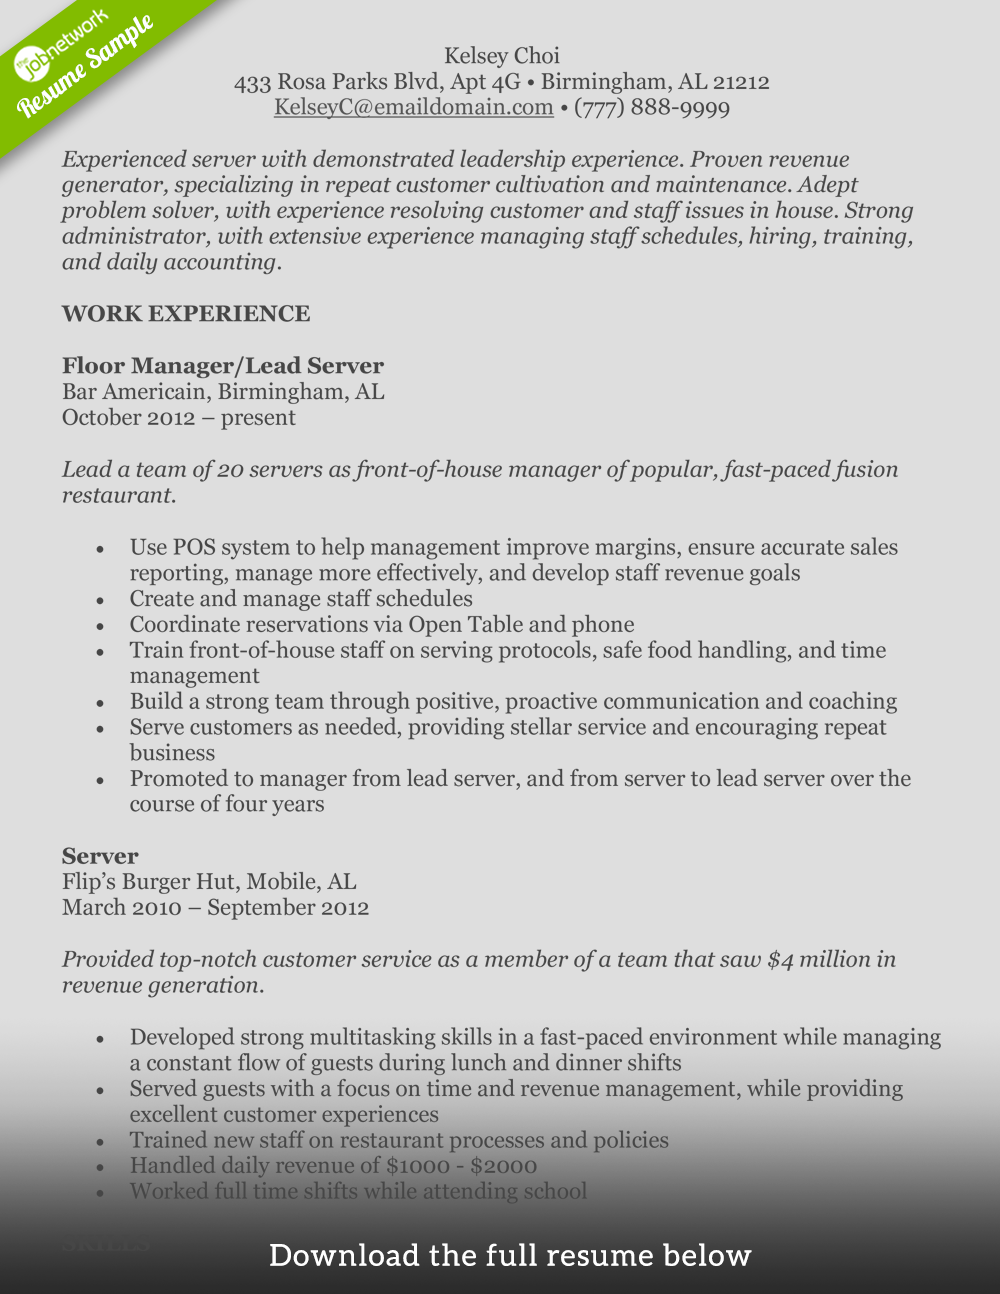 work experience resume samples